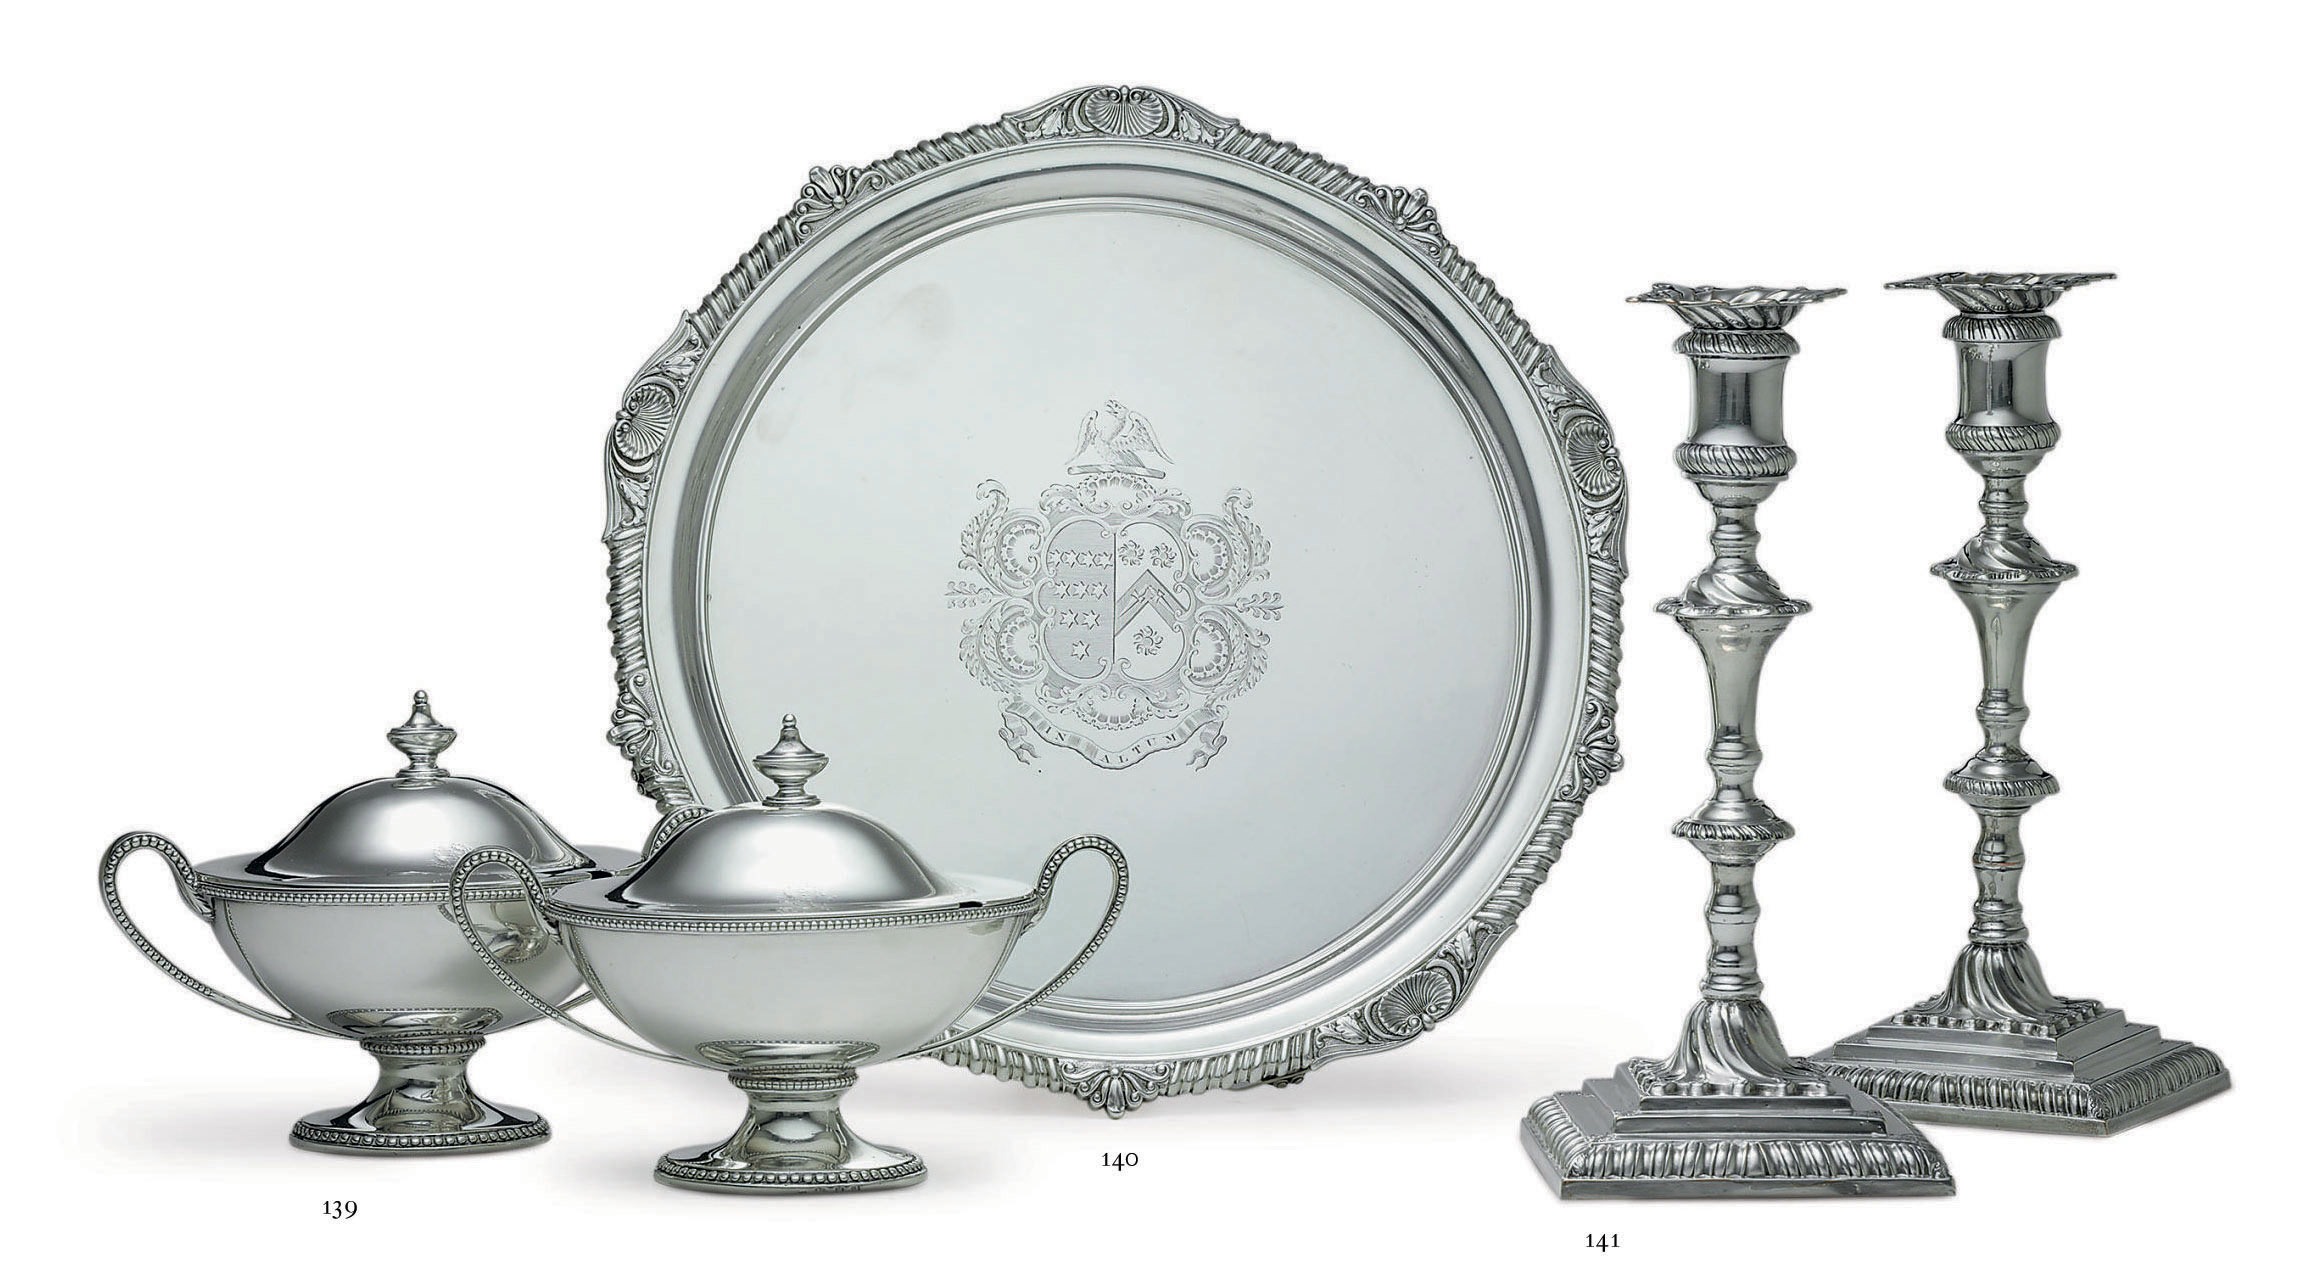 A PAIR OF GEORGE III SILVER SAUCE TUREENS AND COVERS